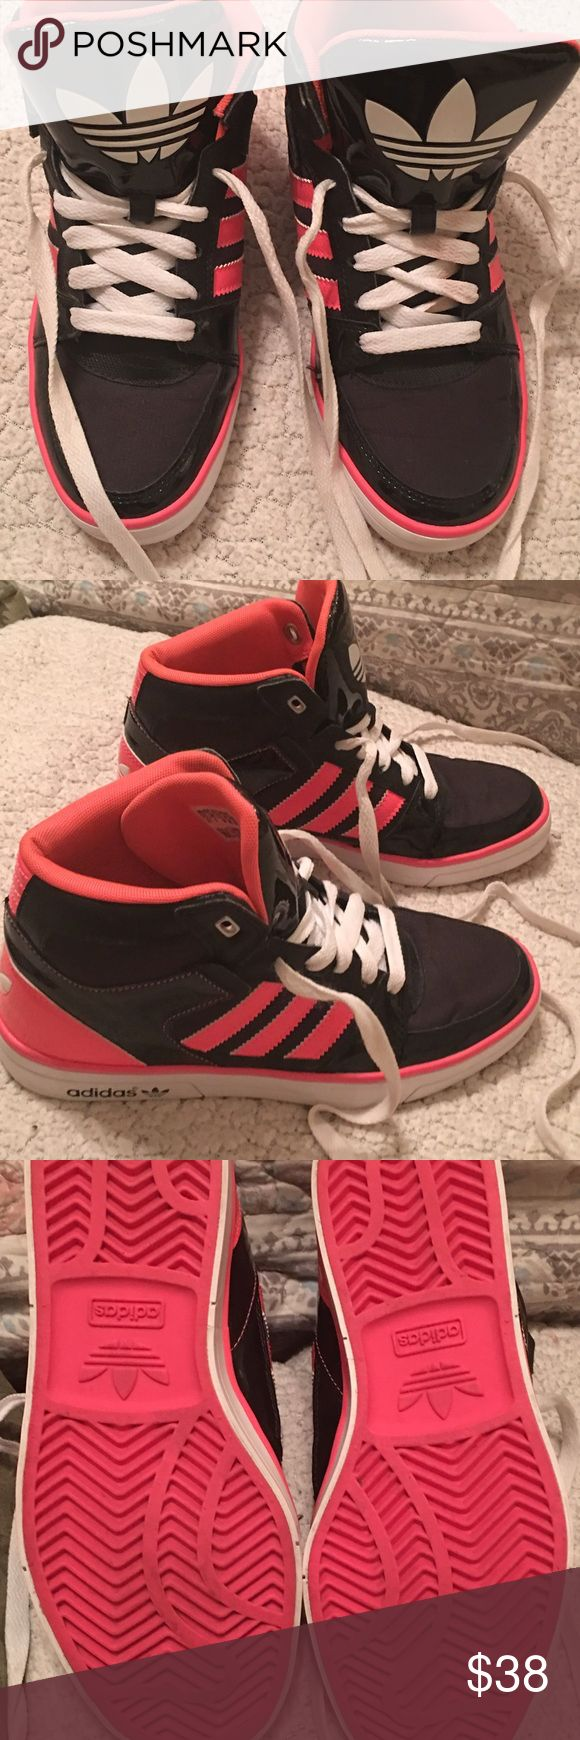 Ladies high top sneakers Ladies ortholite adidas high top sneakers, hot pink and black, Like new worn one time. Adidas ortholite Shoes Athletic Shoes